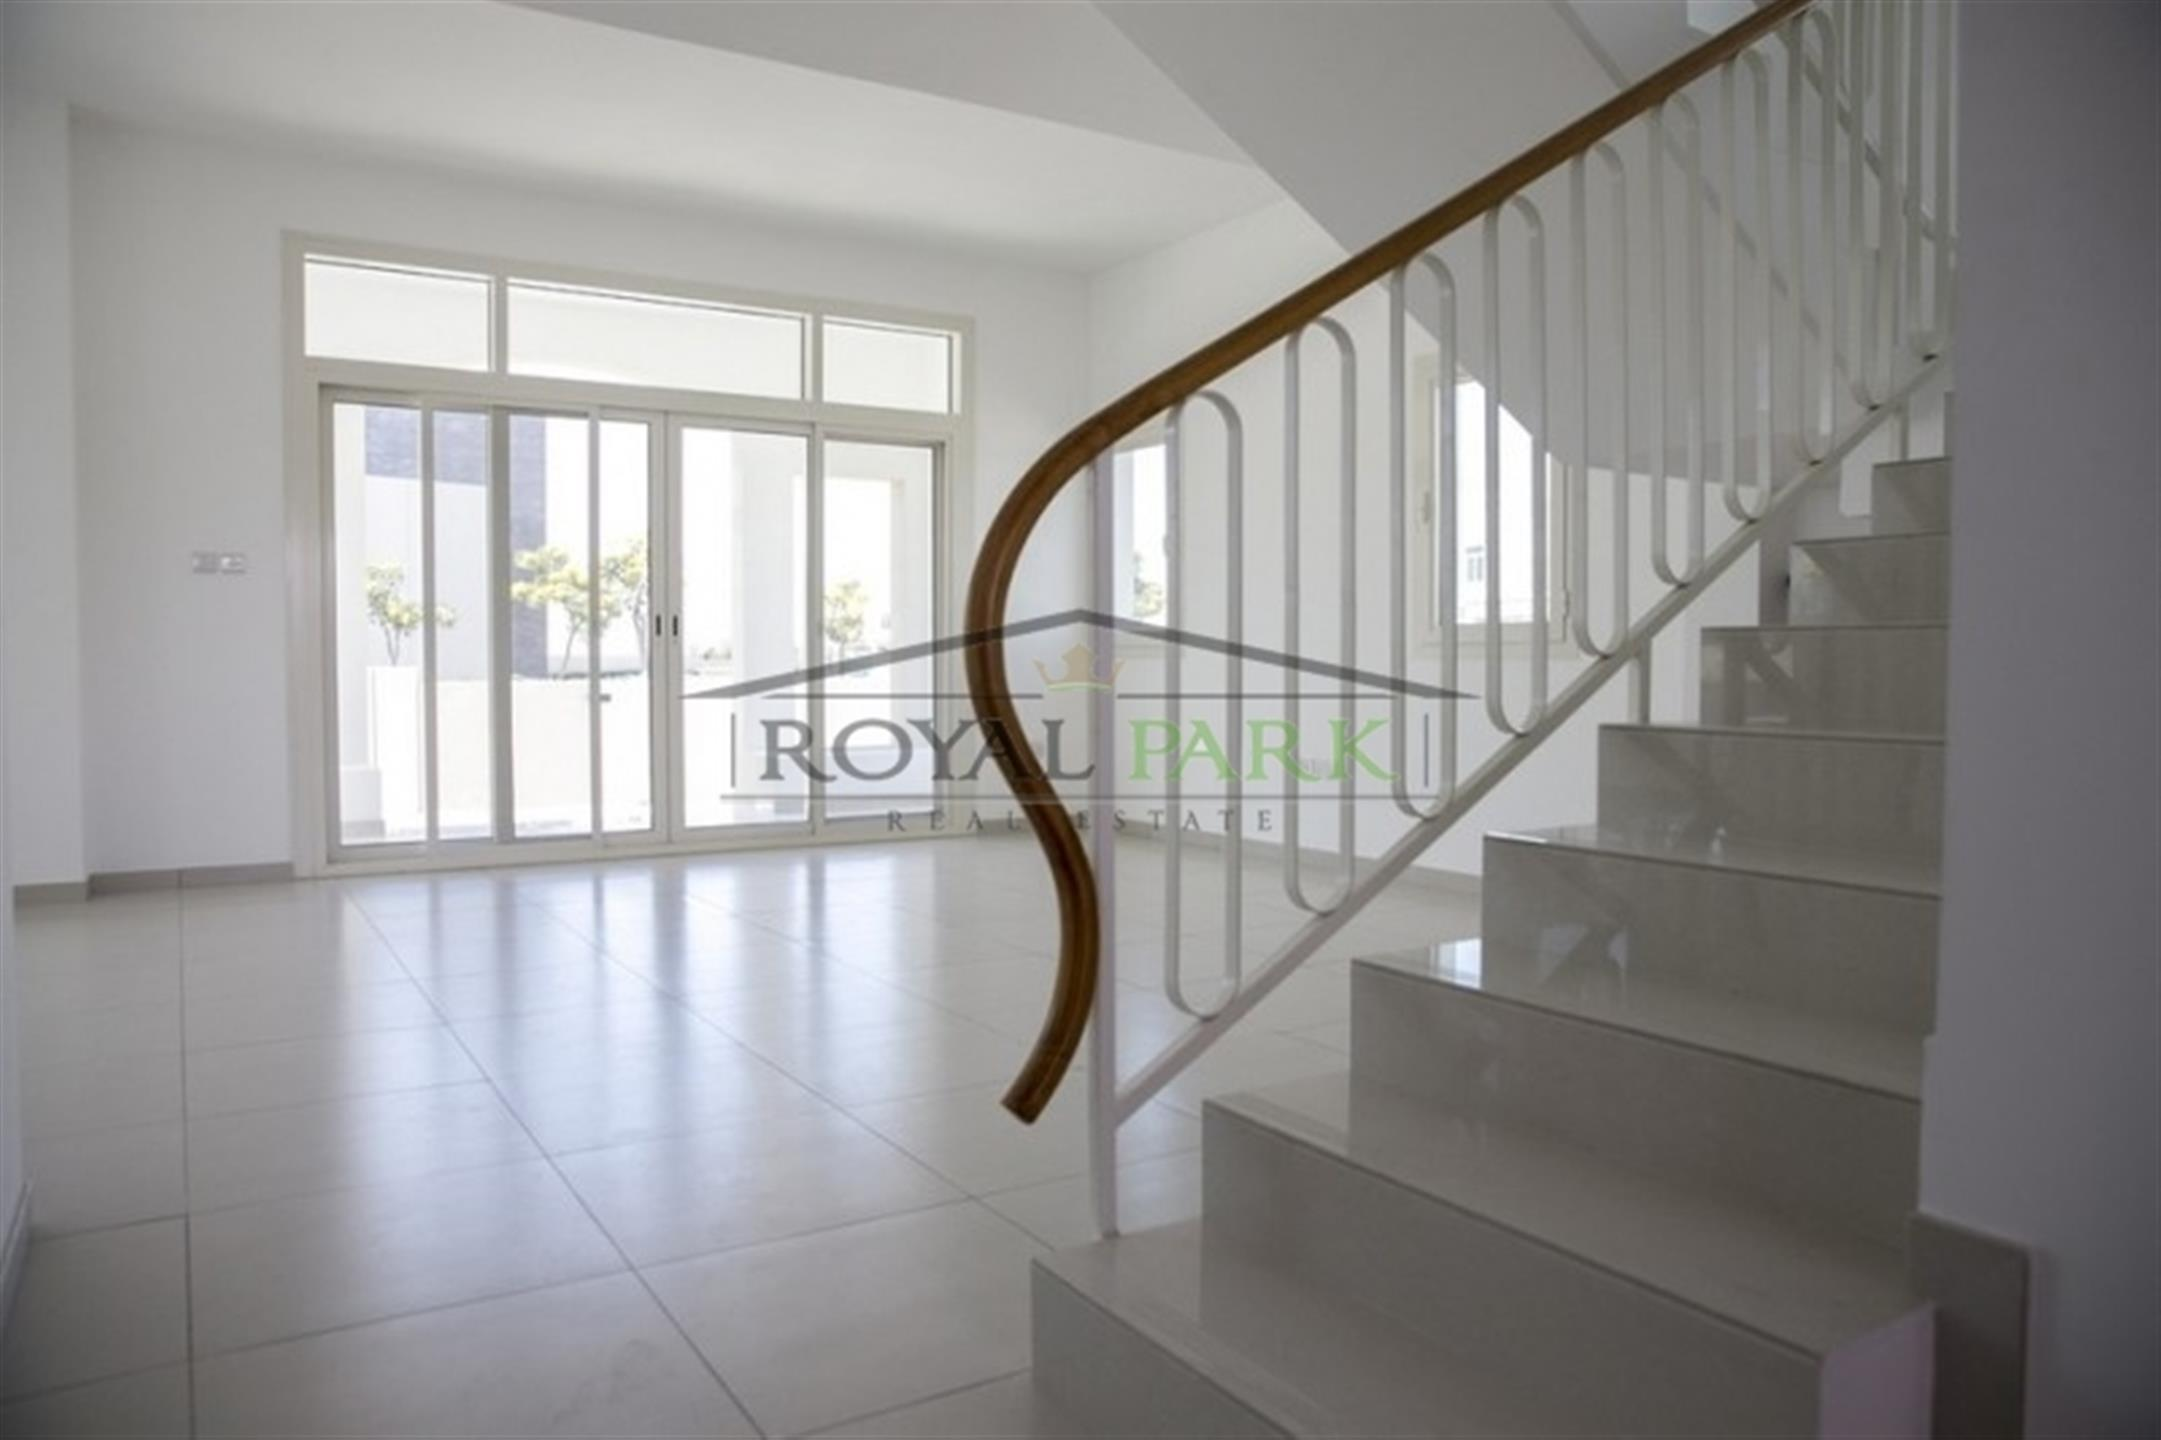 2 Bedroom + Laundry Townhouse For Sale In Al Ghadeer, Ghantoot